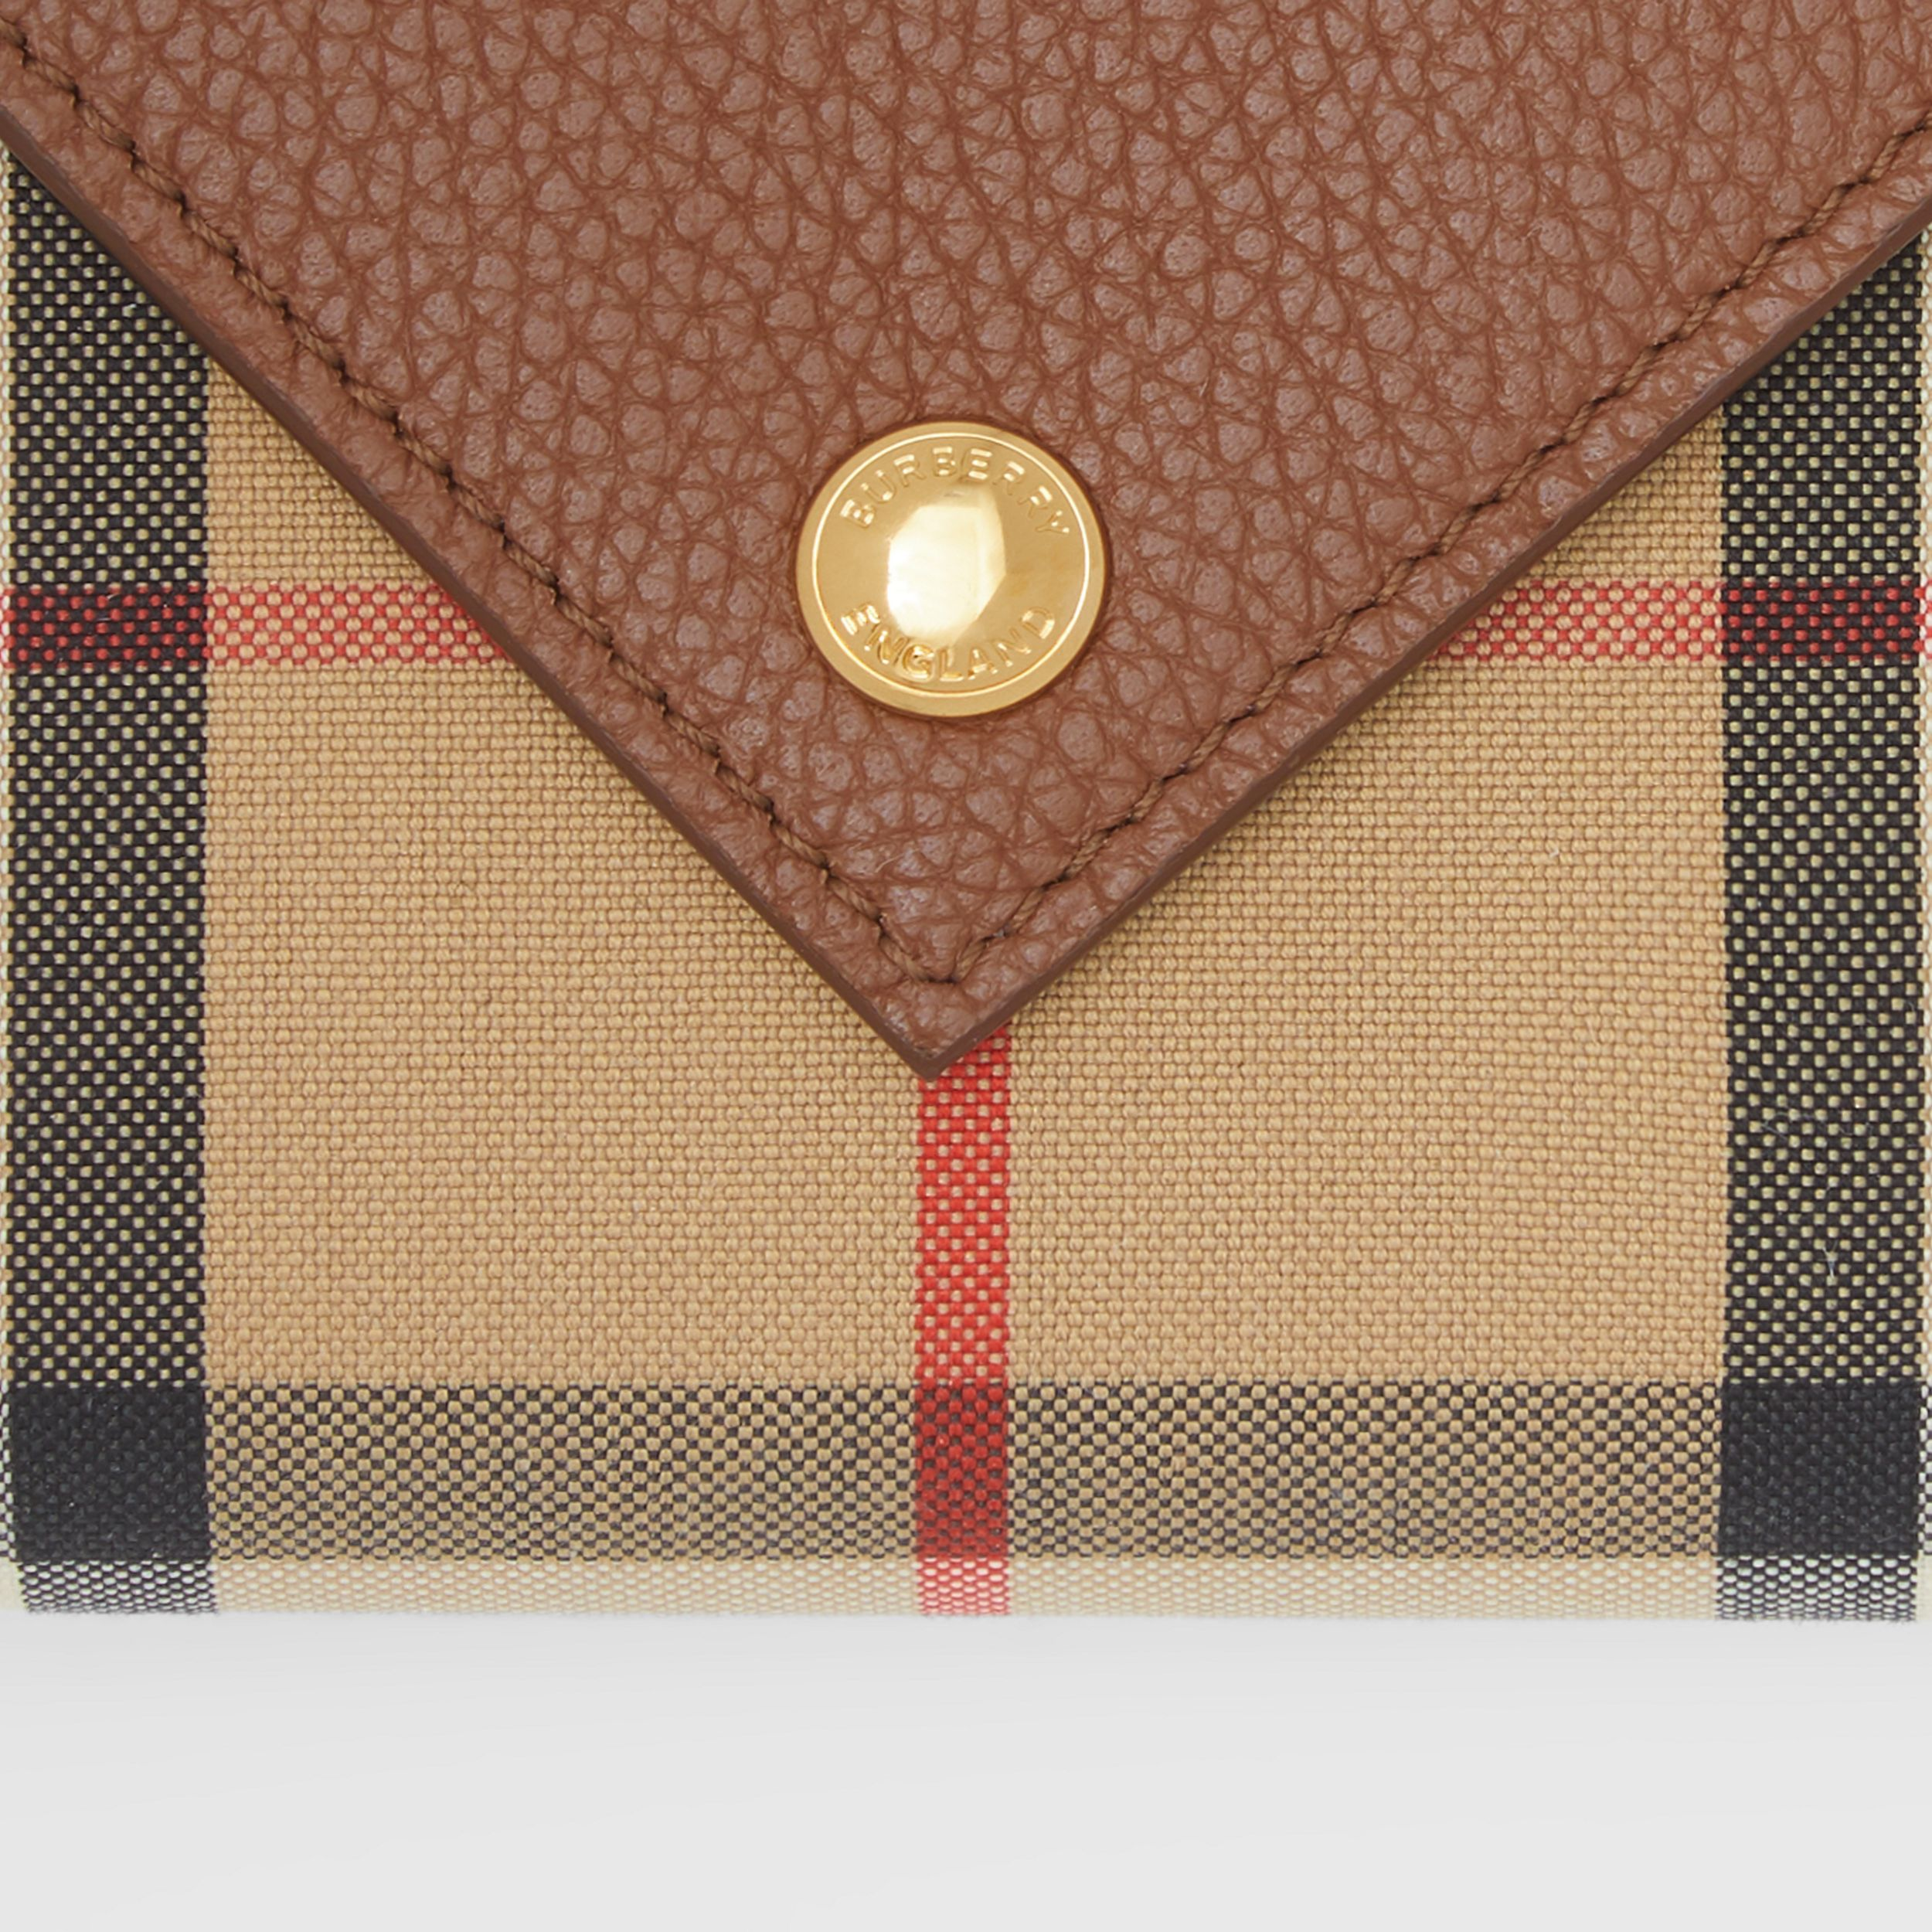 Vintage Check and Grainy Leather Folding Wallet in Tan - Women | Burberry Hong Kong S.A.R. - 2